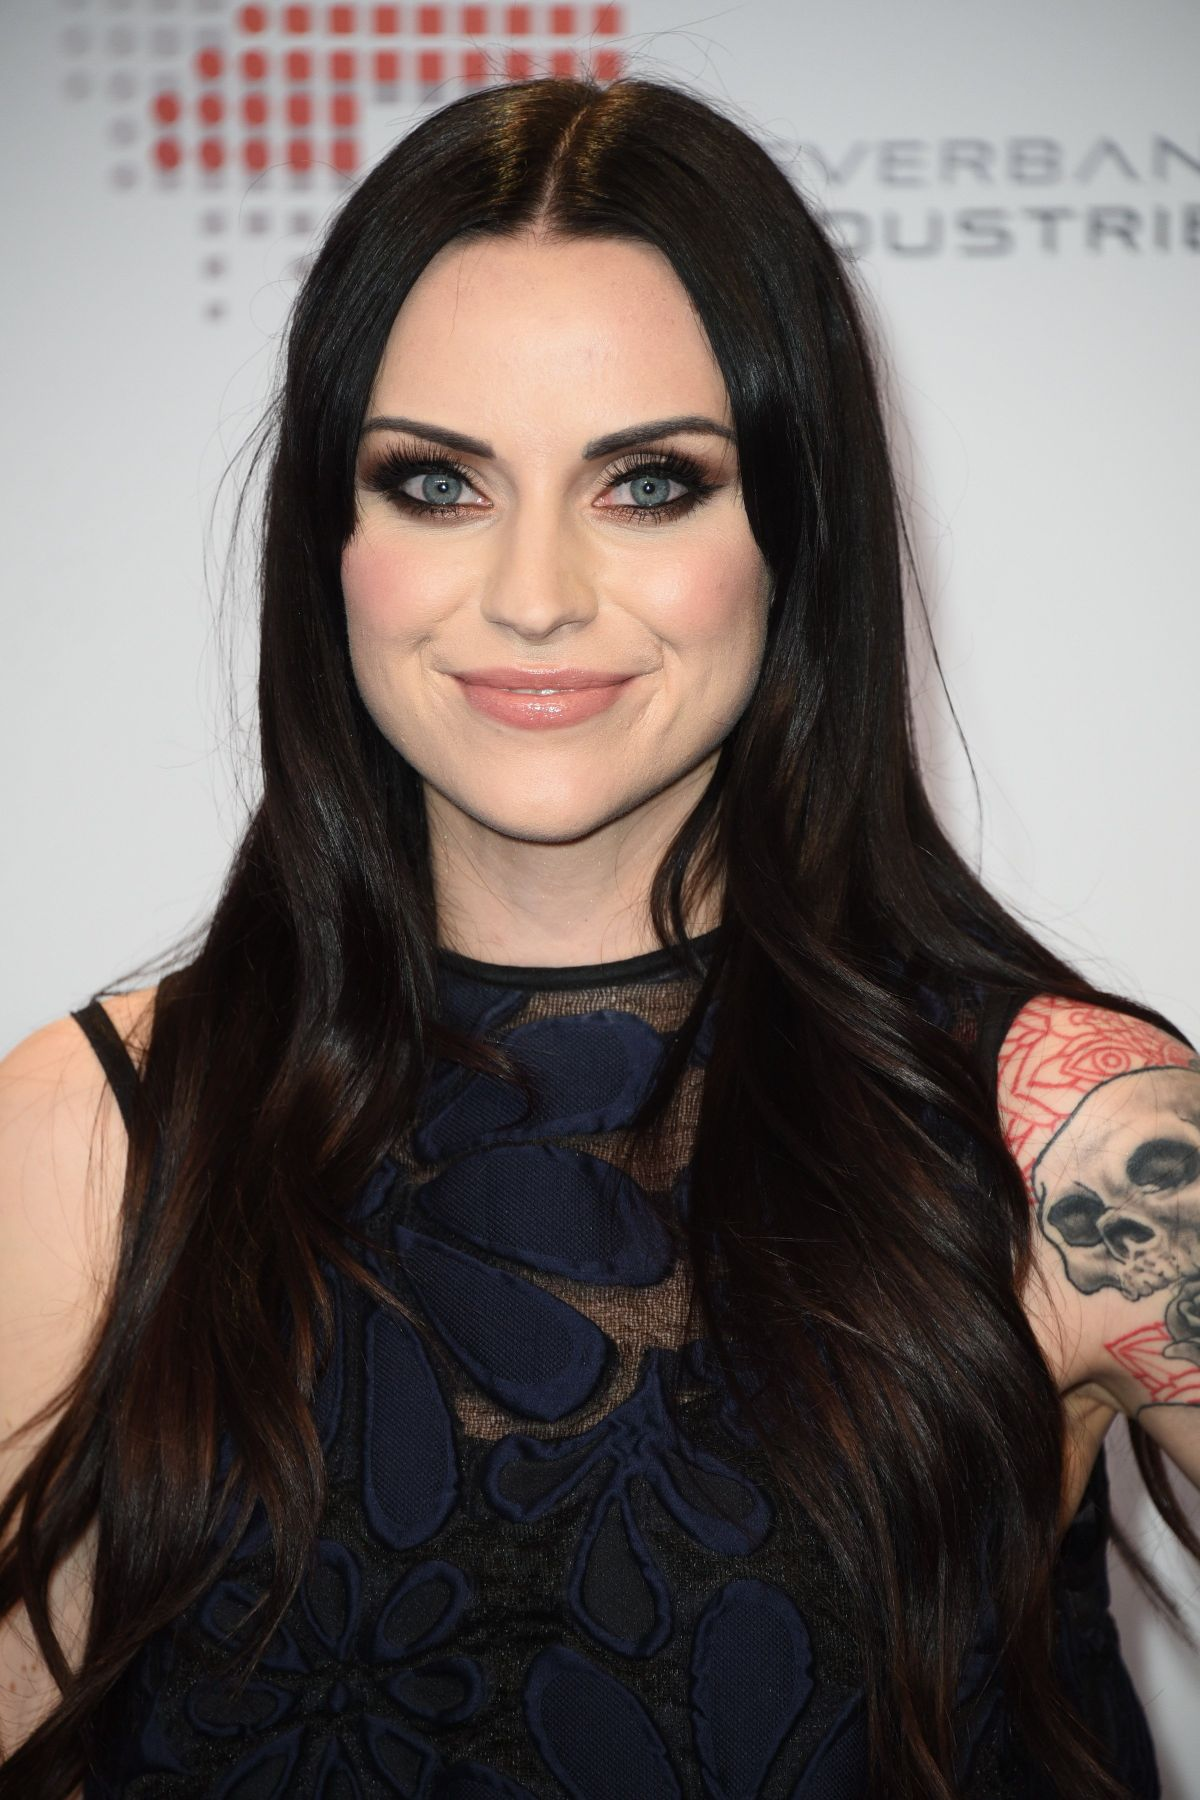 Amy MacDonald At ECHO Verleihung 2016 In Berlin